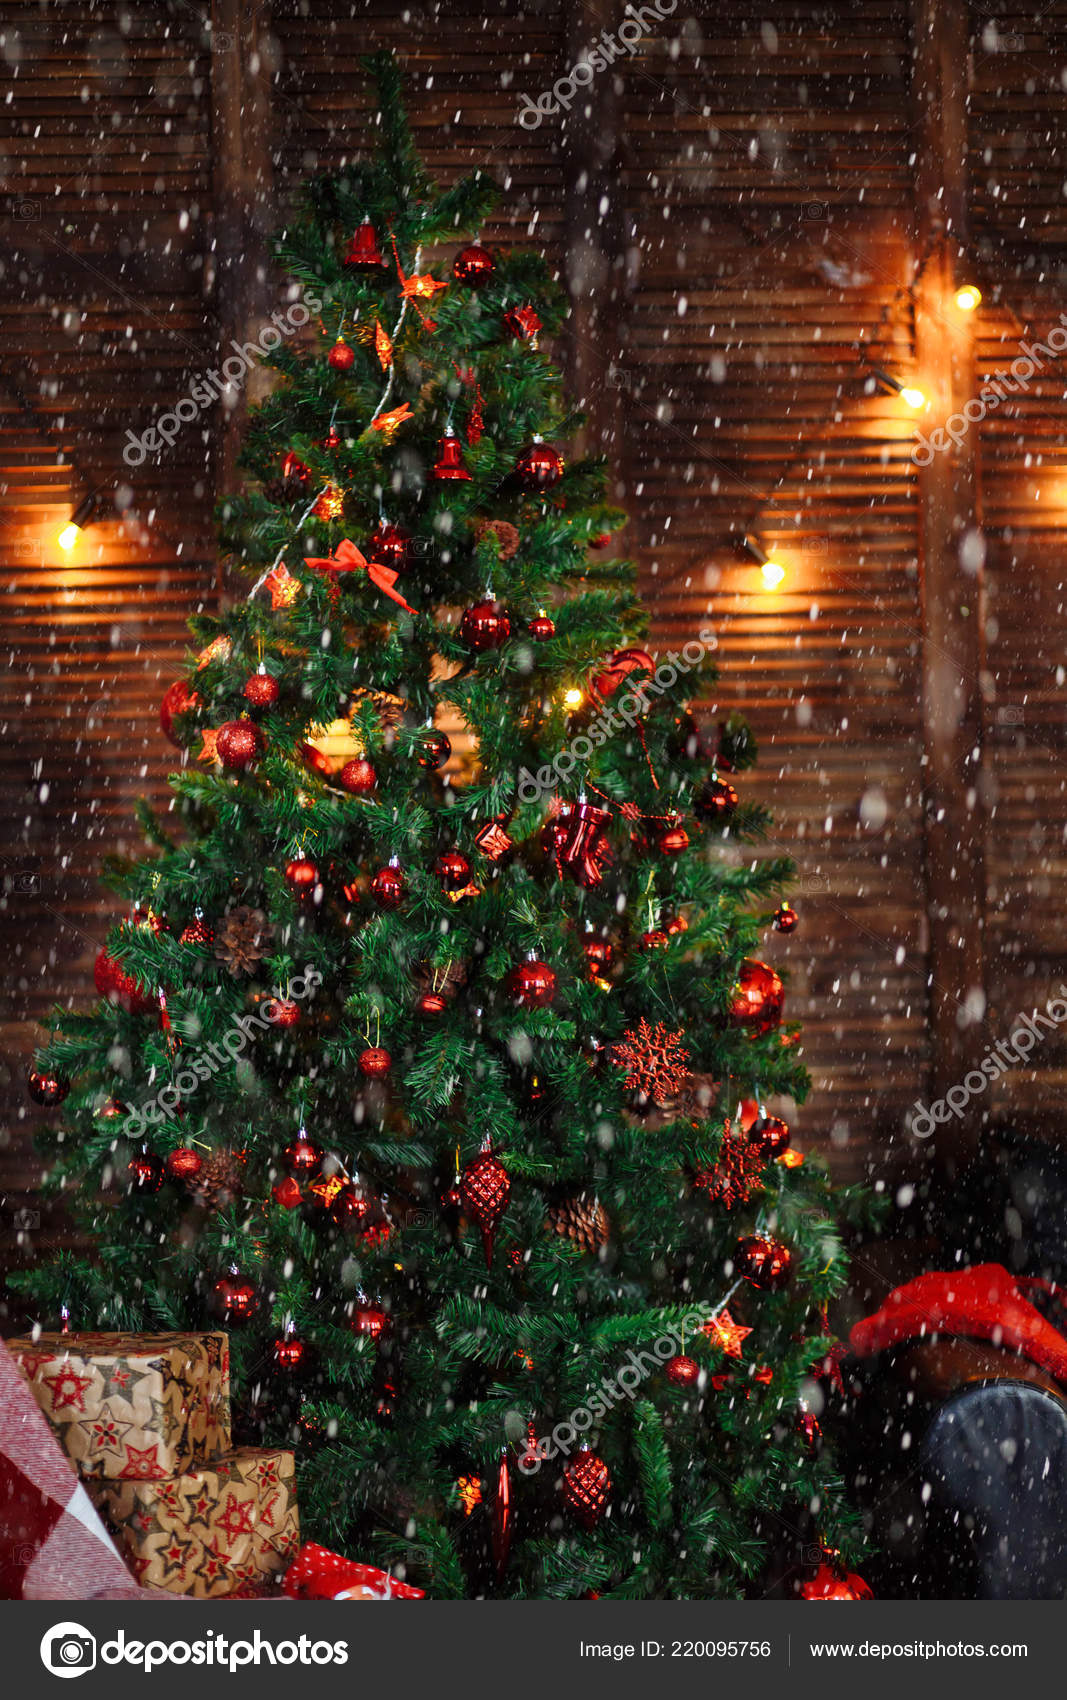 Green Christmas tree decorated with red toys ornaments pine cones beads garlands box sofa wooden wall floor in the dark